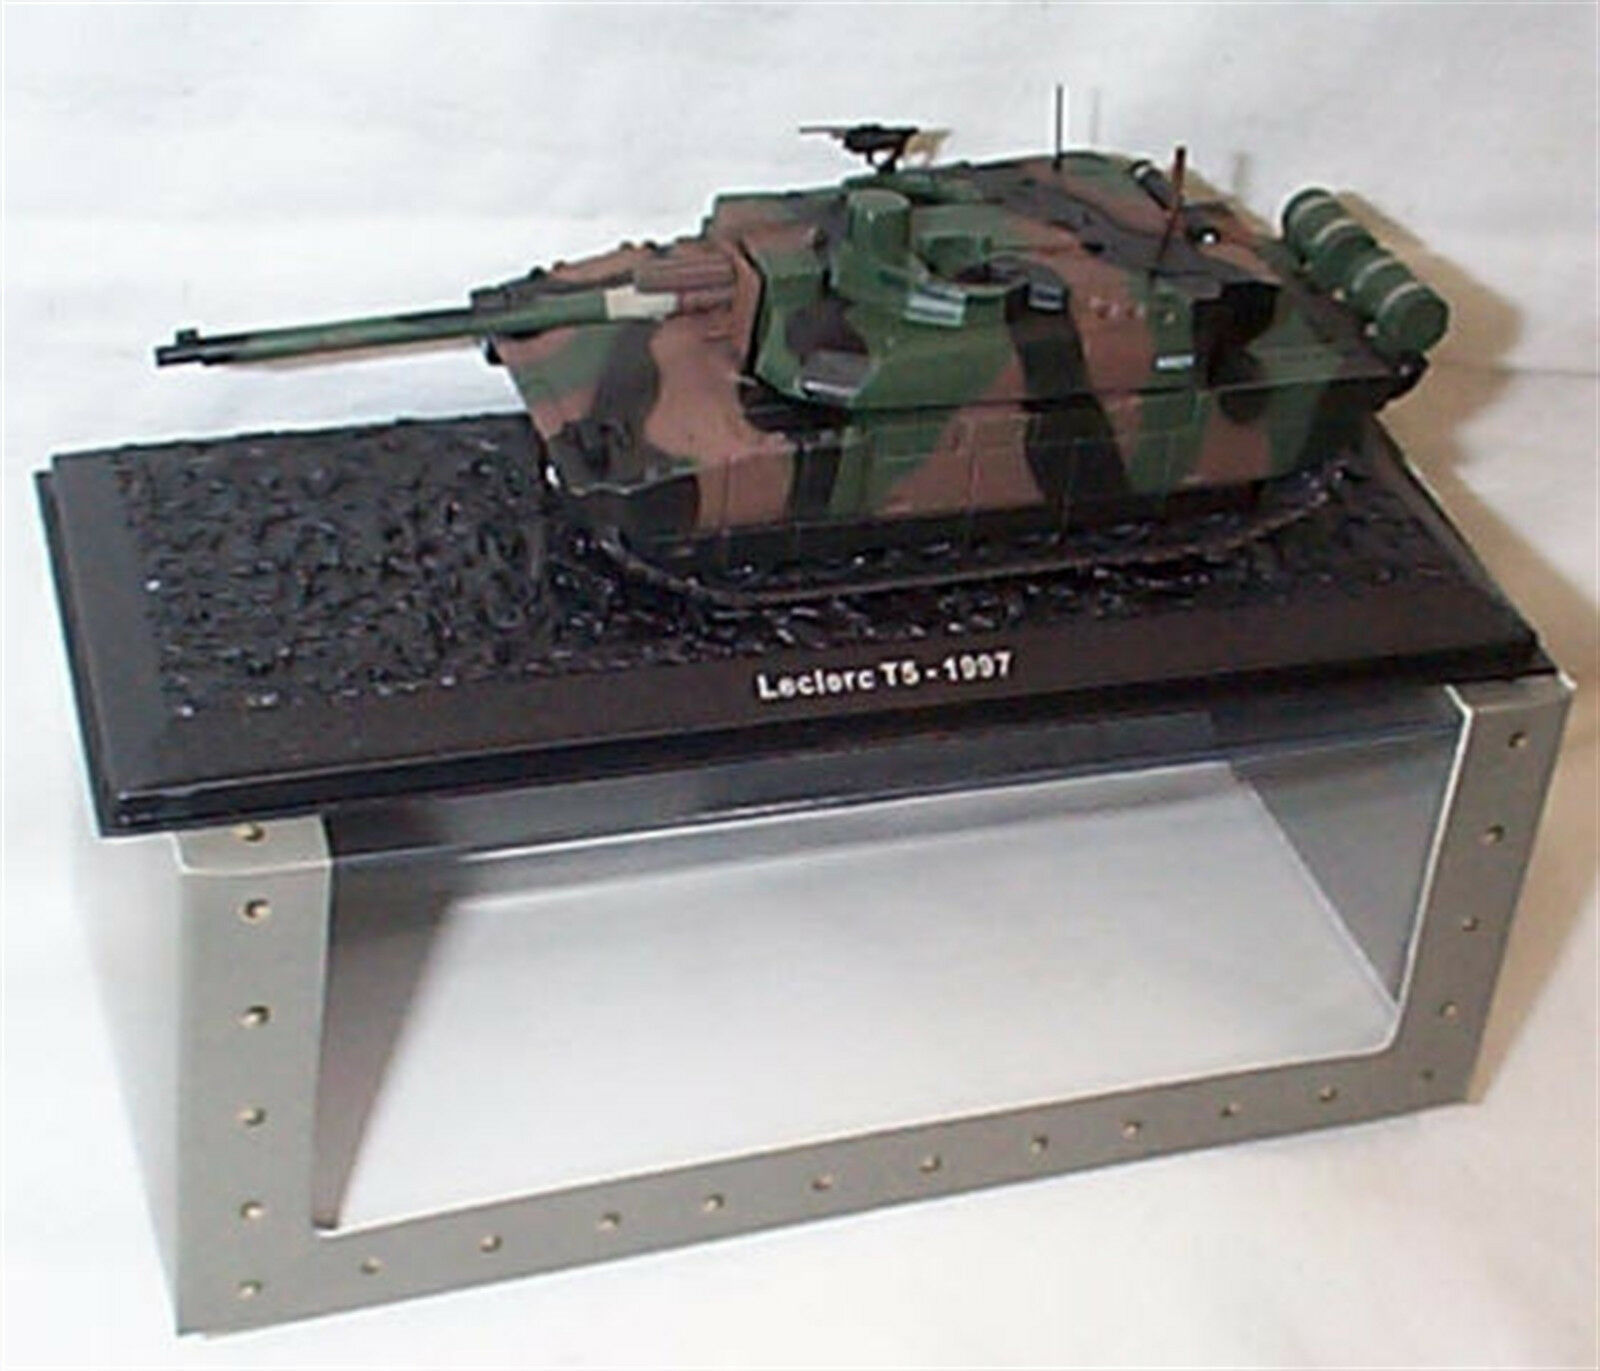 Leclerc T5 1997 Tank 1-72 scale new in case sealed